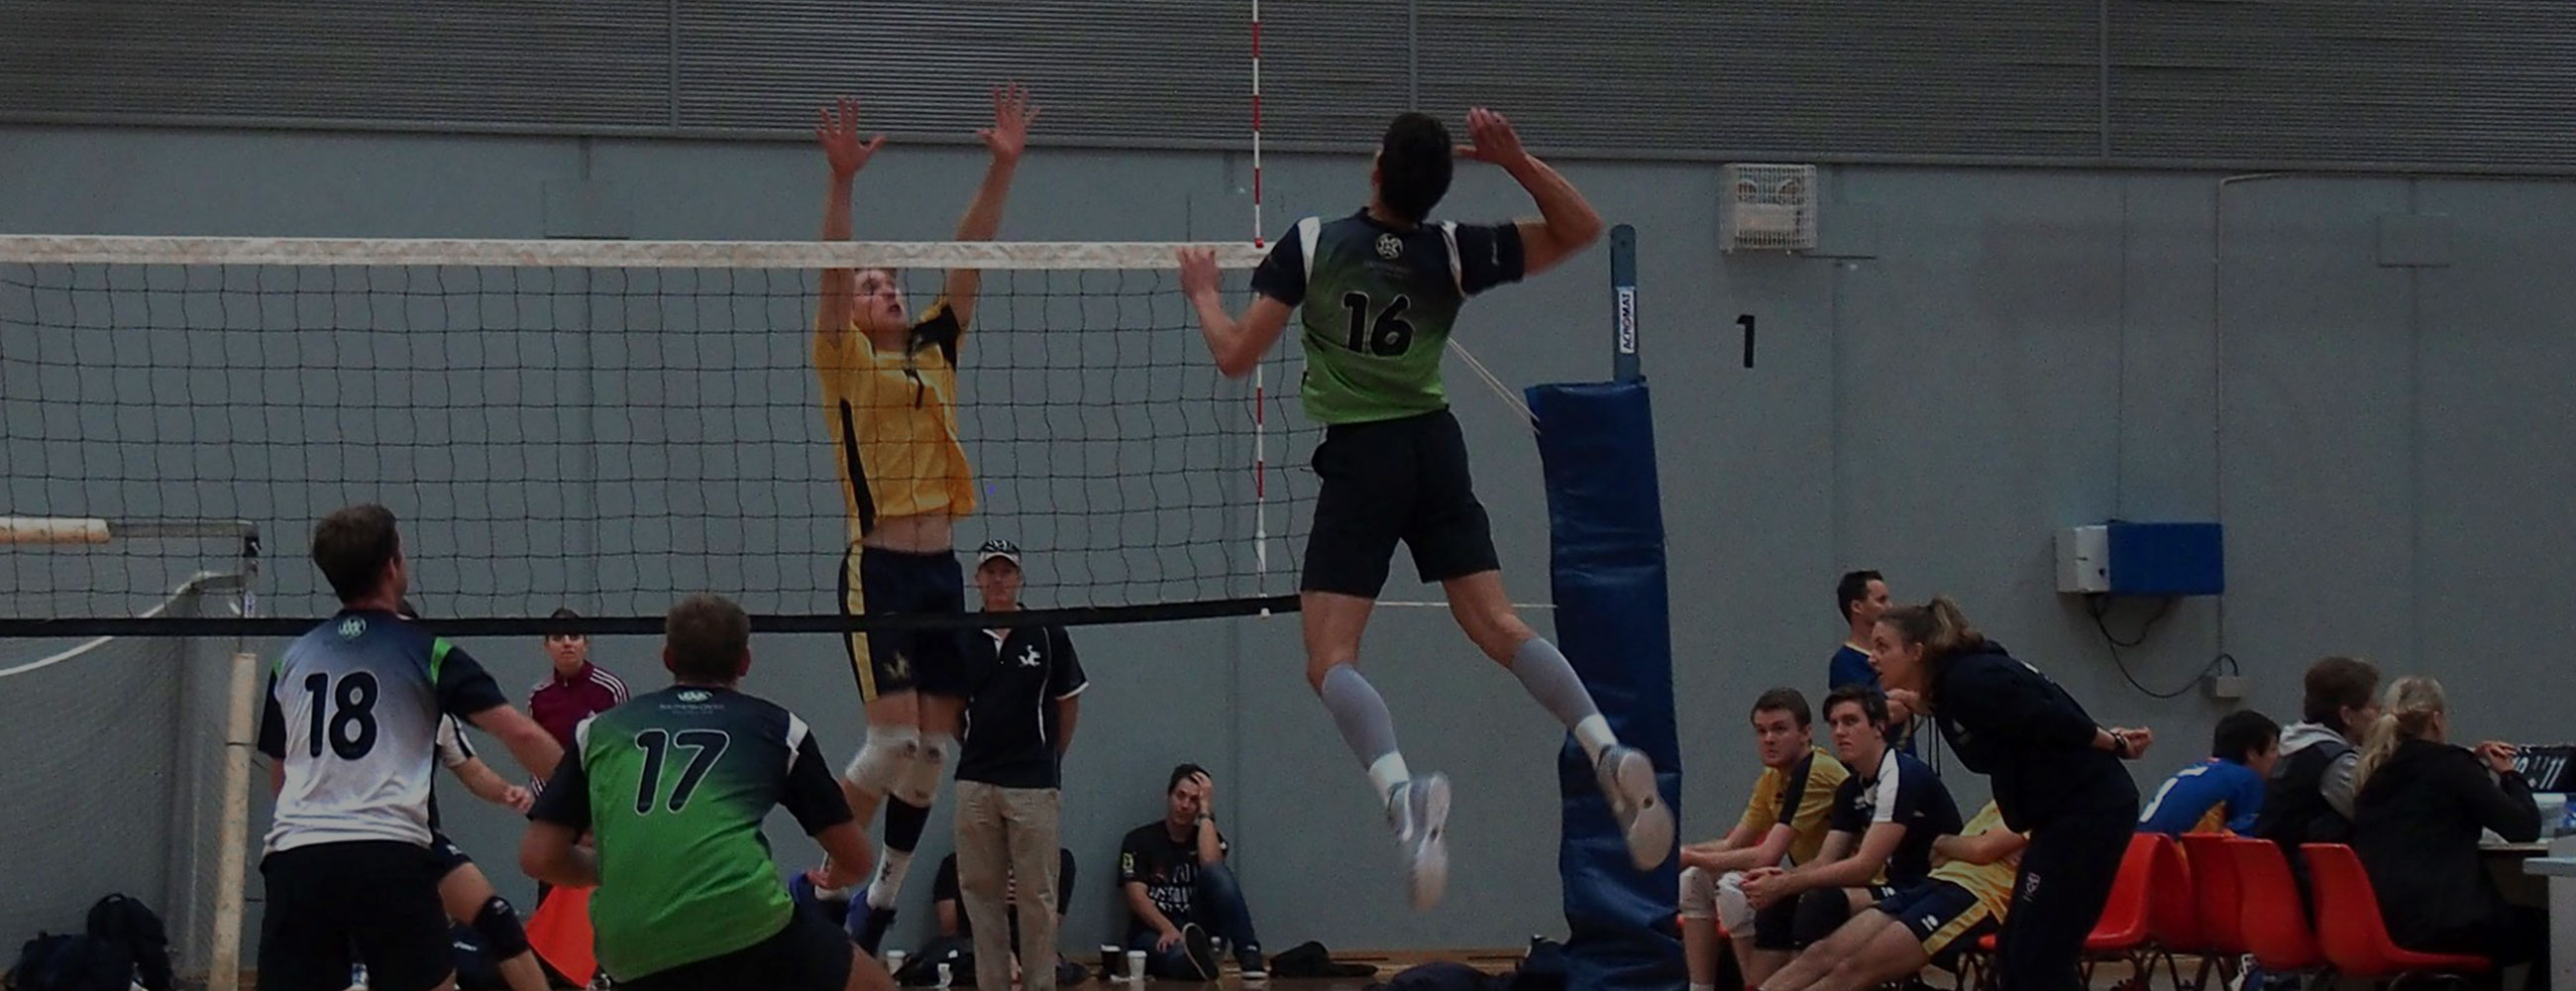 Perth Volleyball Club